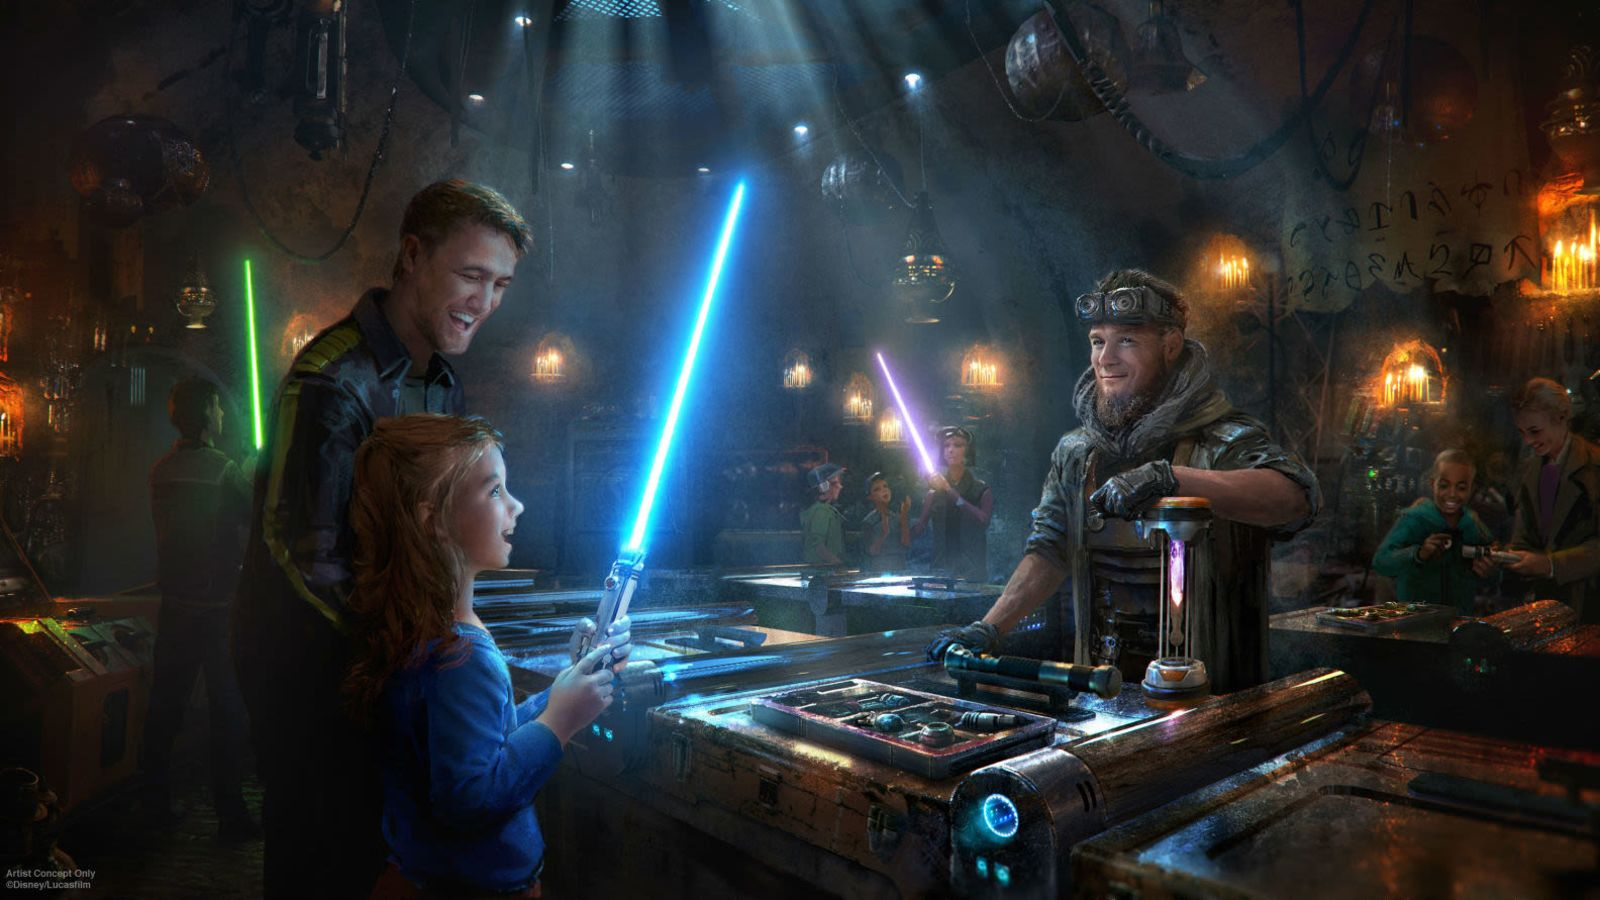 Galaxy S Edge Interactive Experiences Bounty Hunters And Rebel Spies